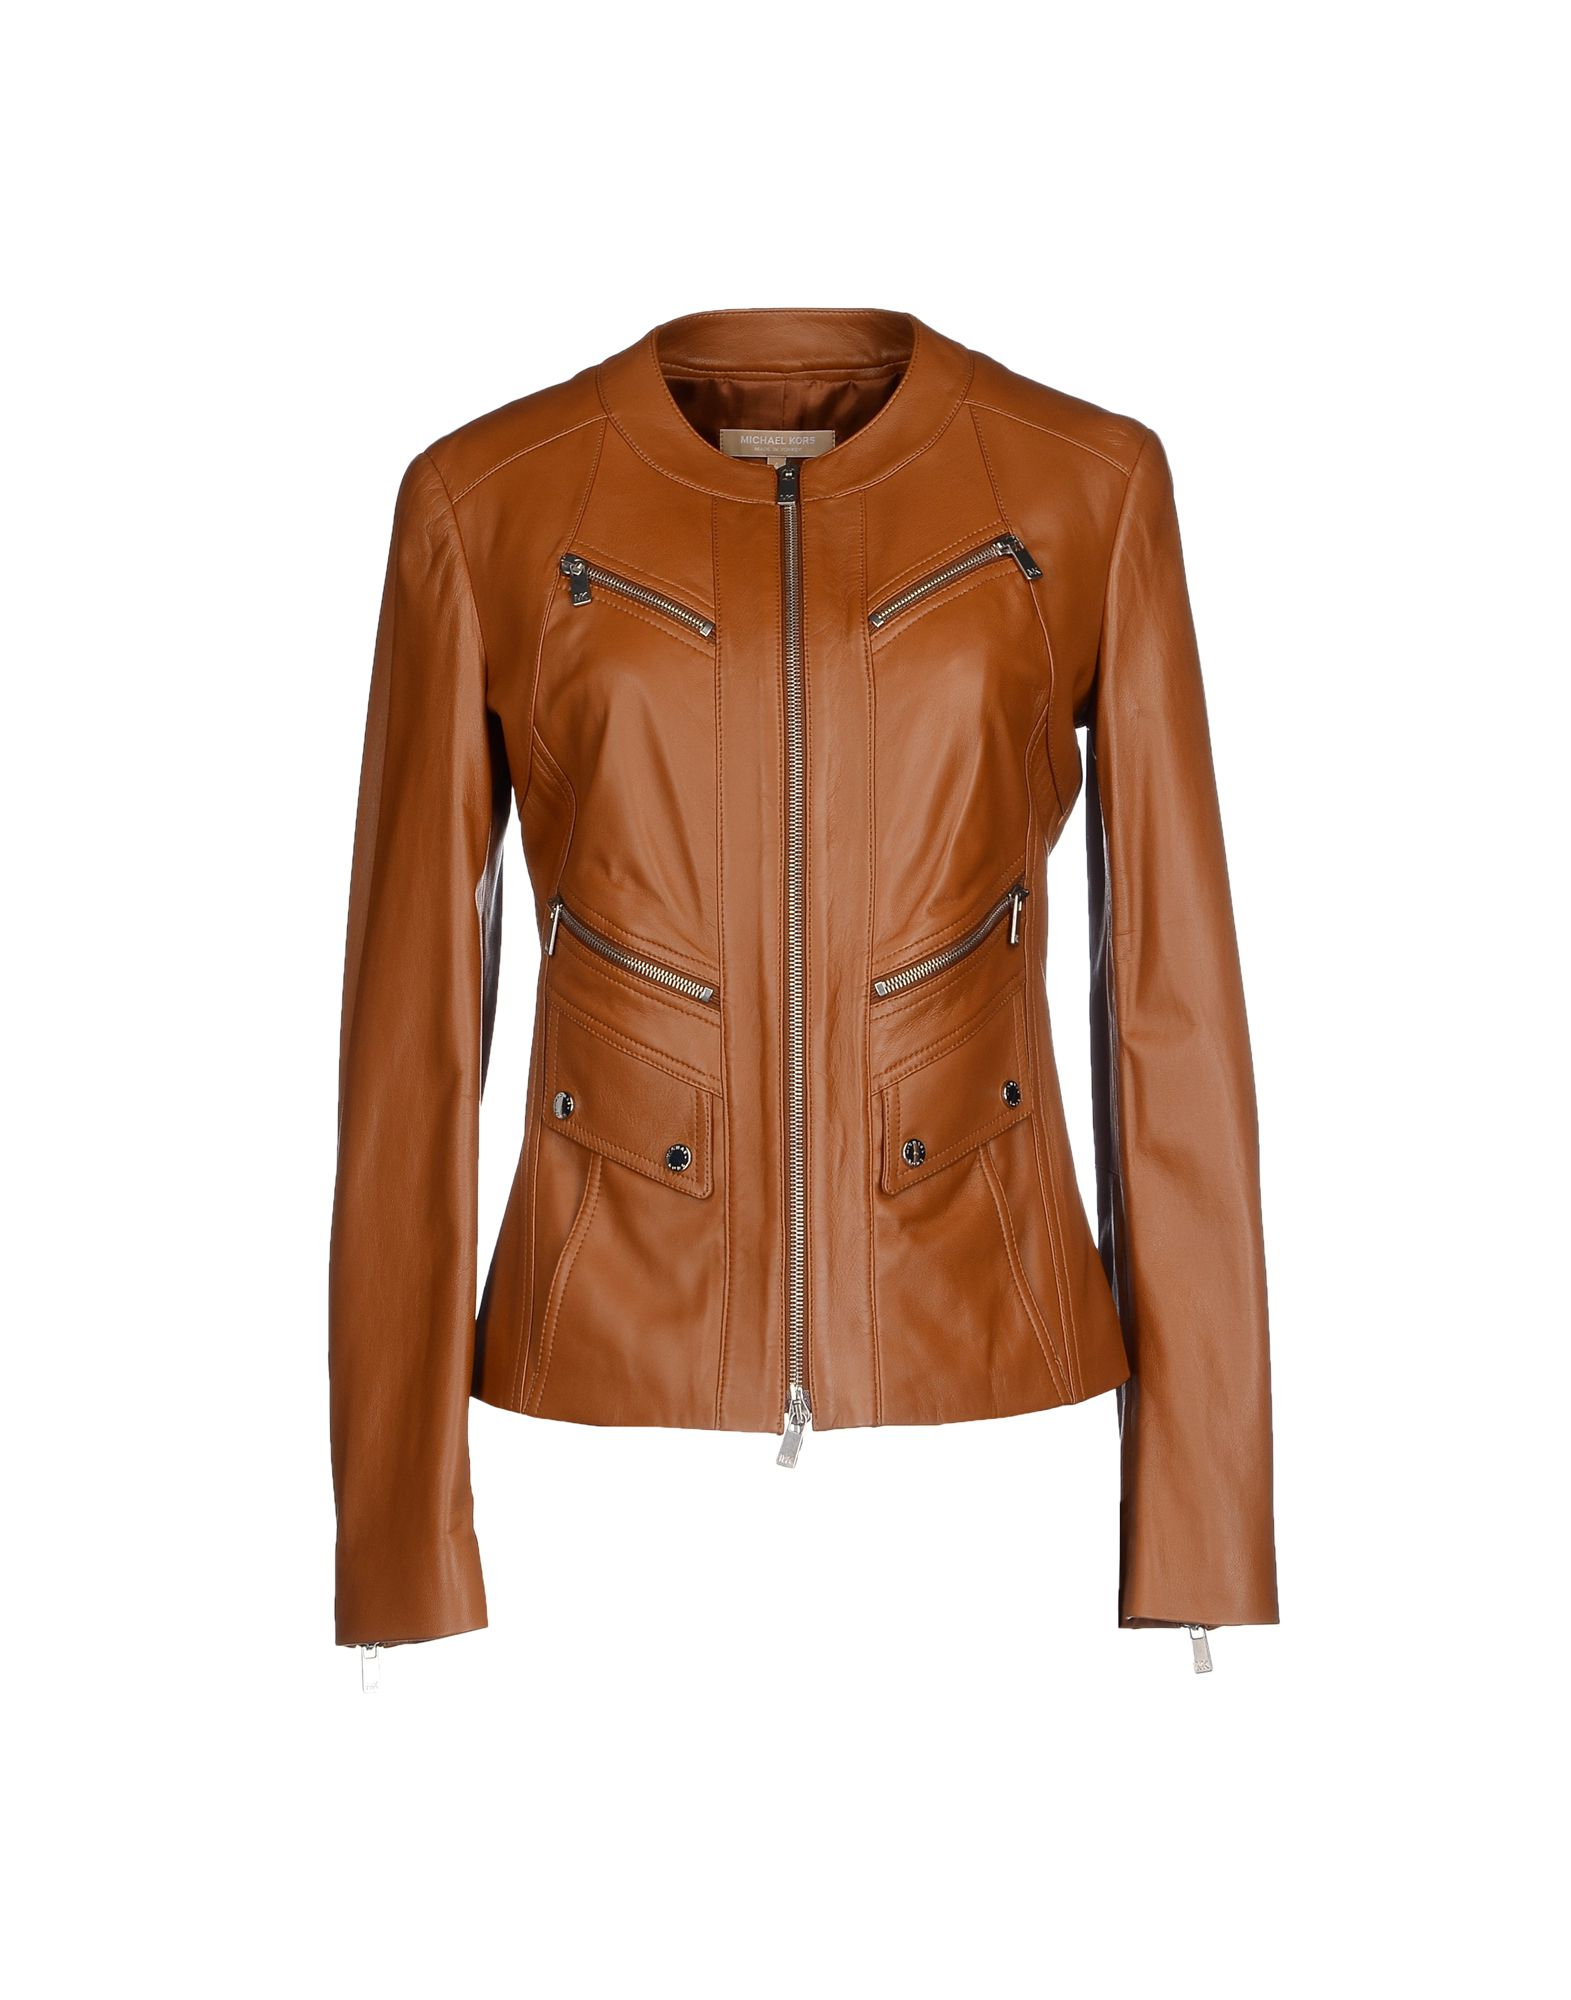 michael kors female michael kors jackets